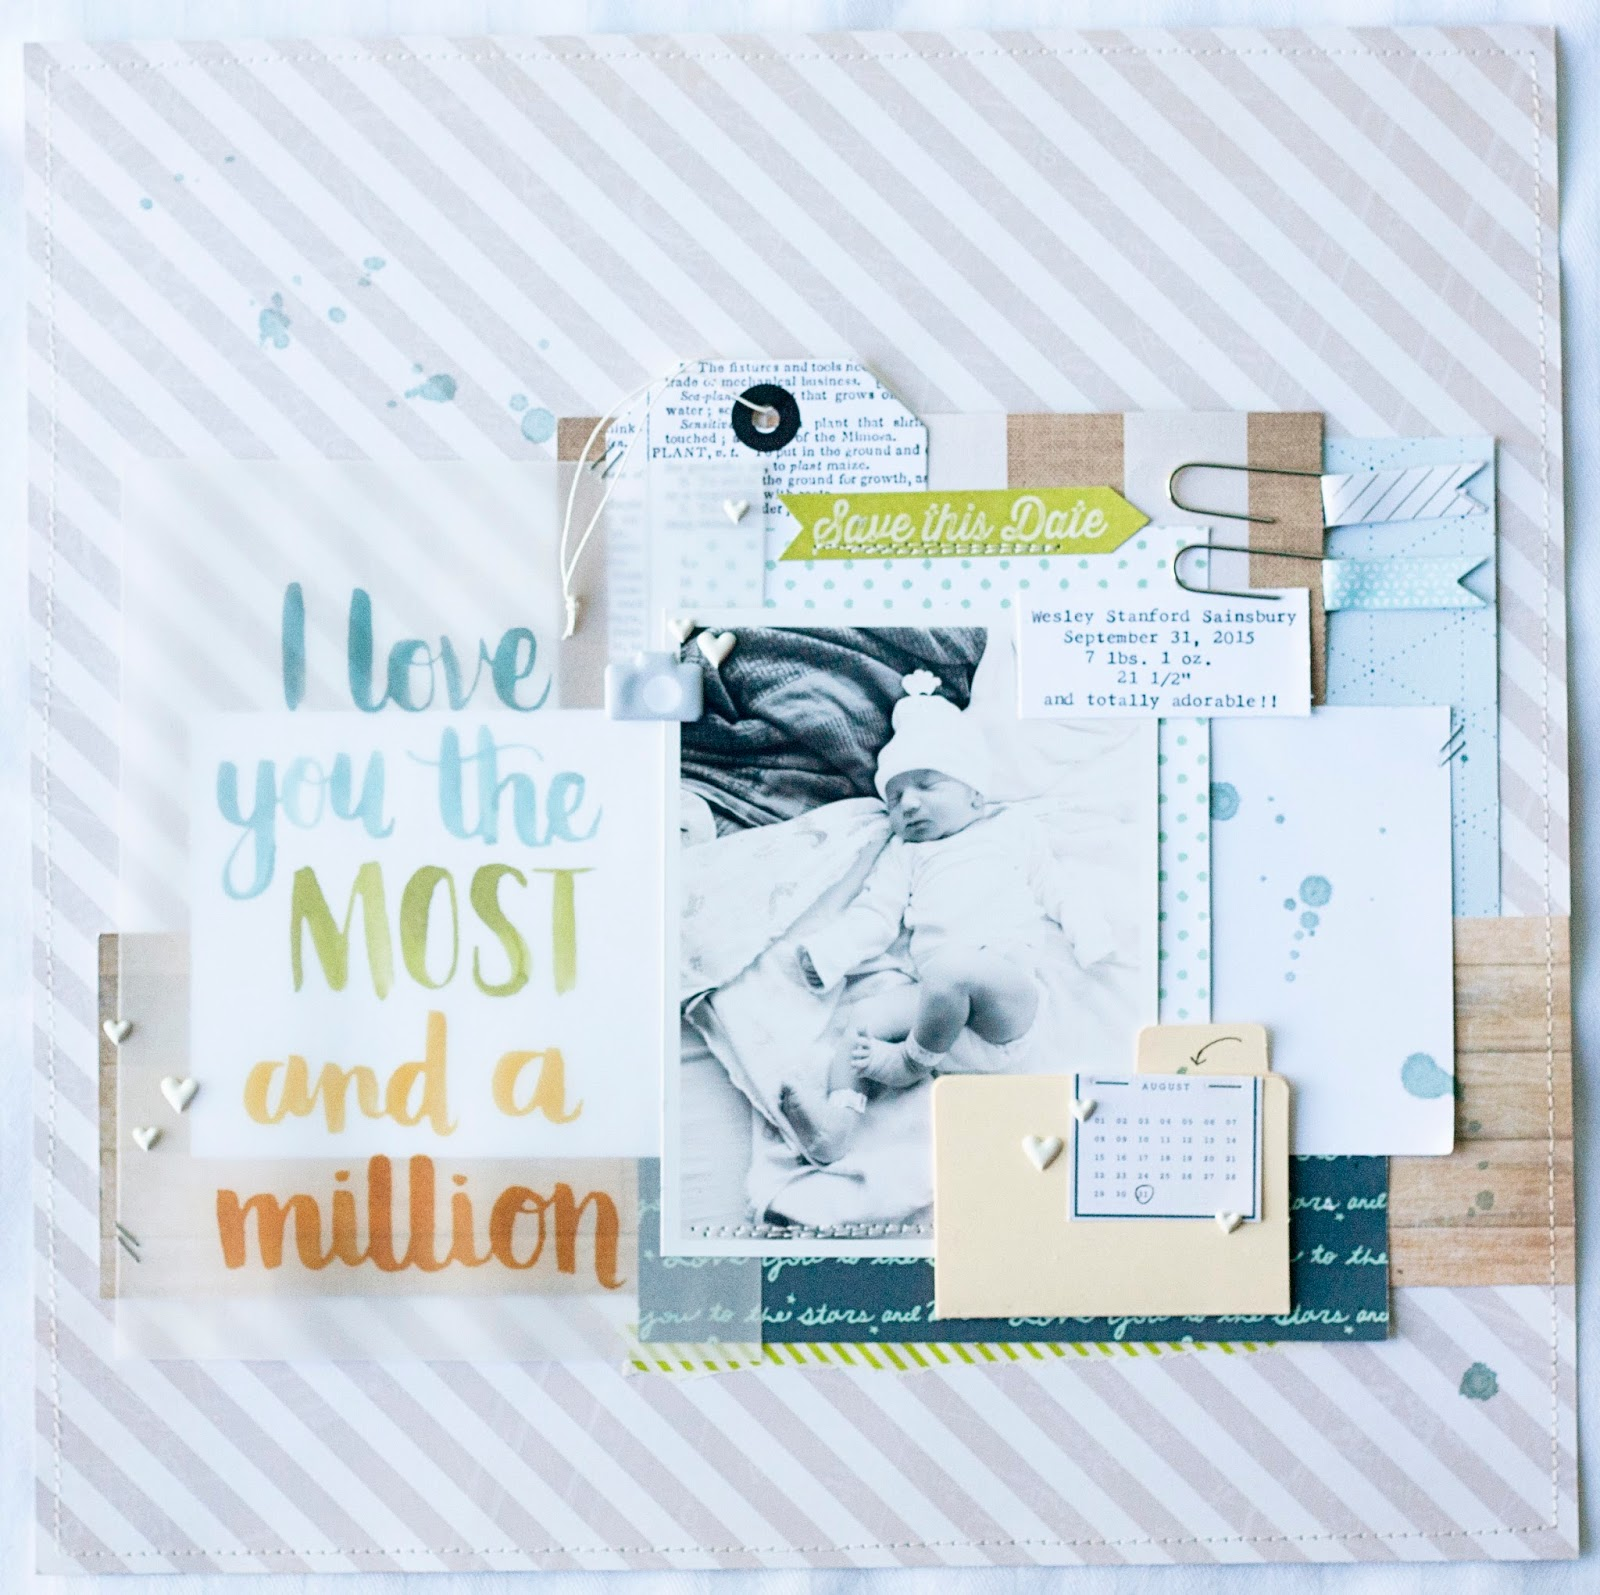 Scrapbook ideas sister - When My Daughter Was Born My Sister Was Just 12 Years Old She Used To Babysit For Me And They Became Very Close